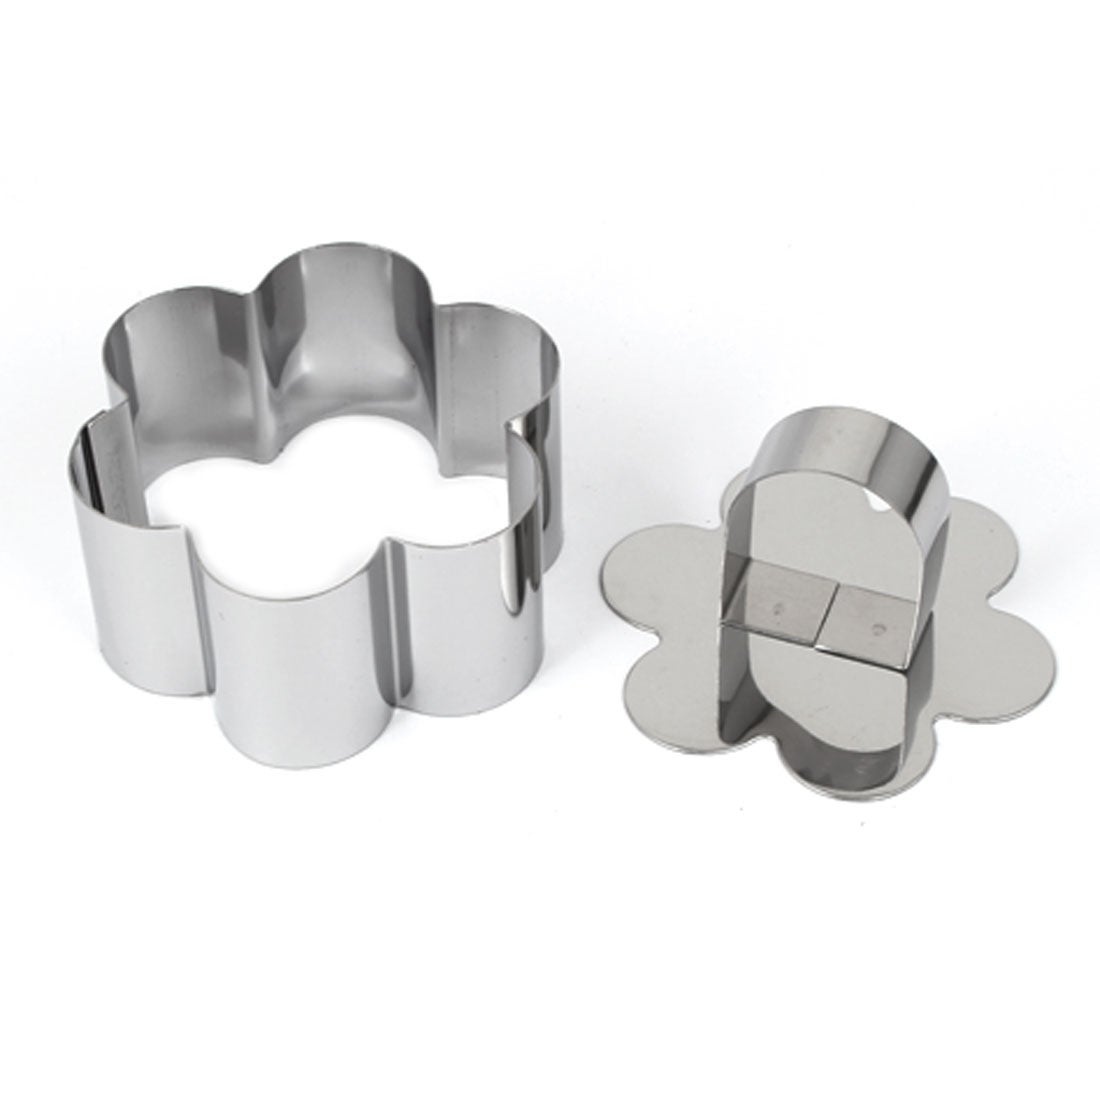 3PC Silver Flower Cookies Cutter Pastry Biscuit Cake Decorating Mold Mould Tools